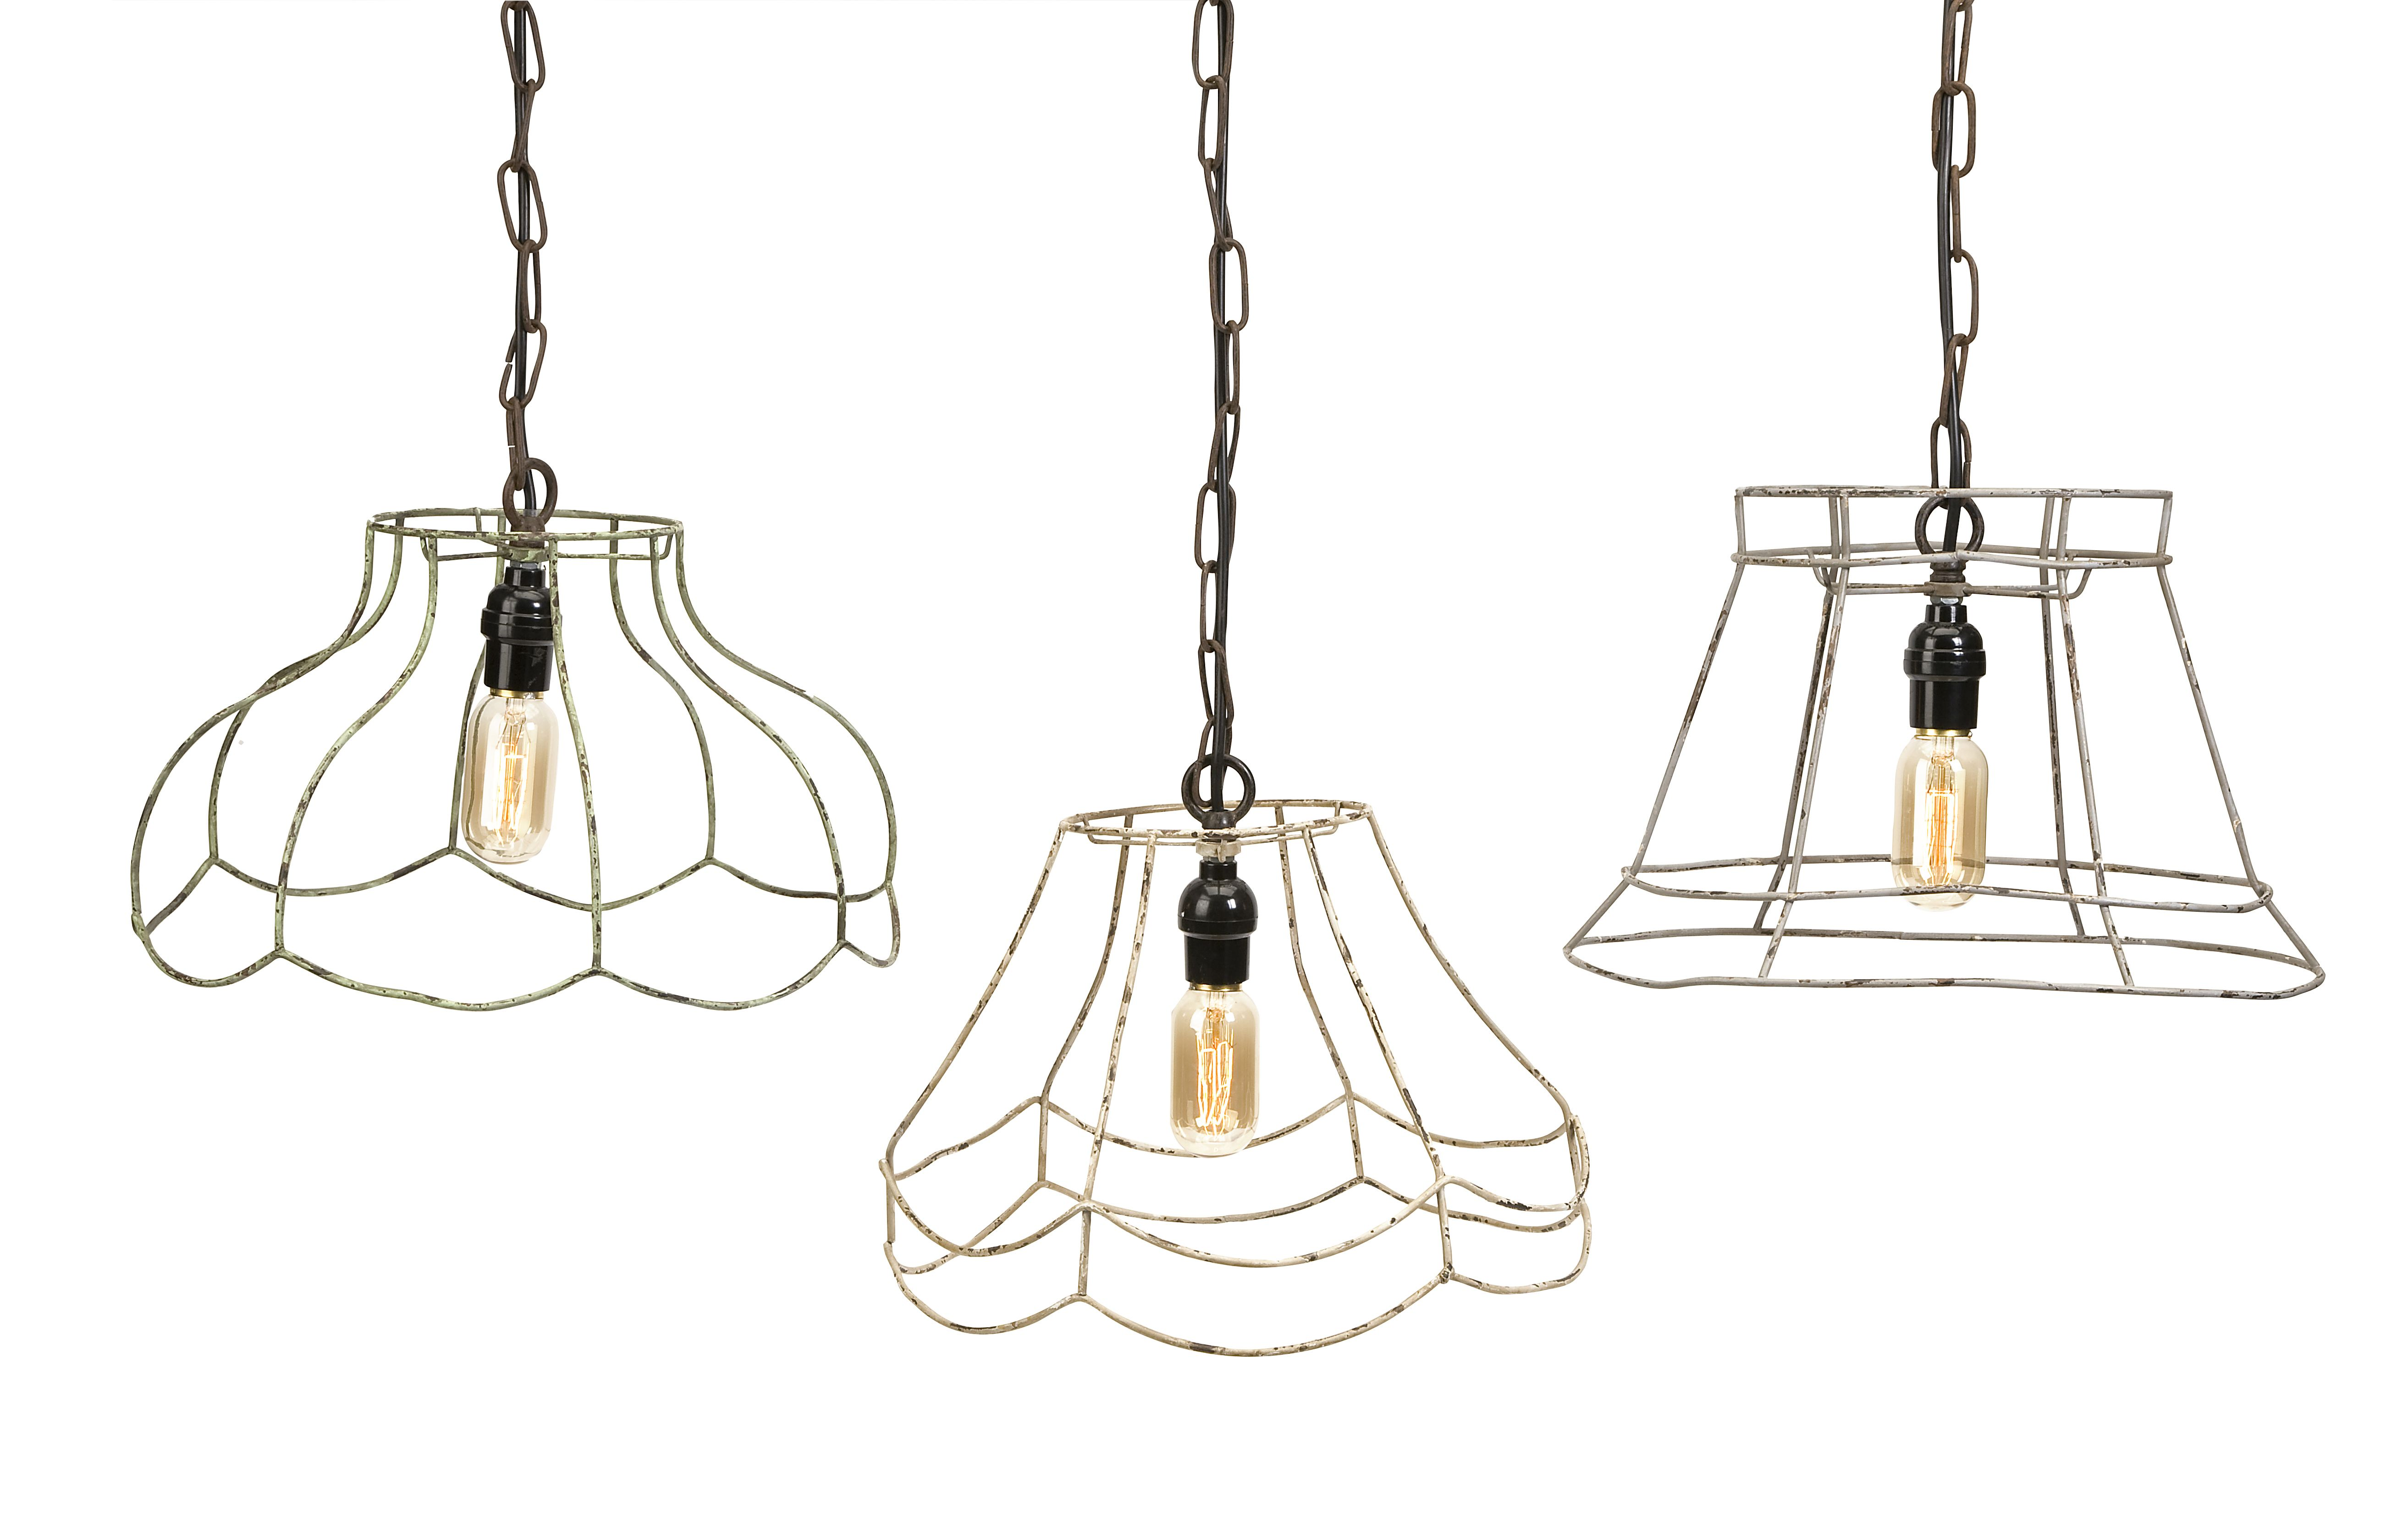 Crestly wire lamp shade pendants set of imax pinterest